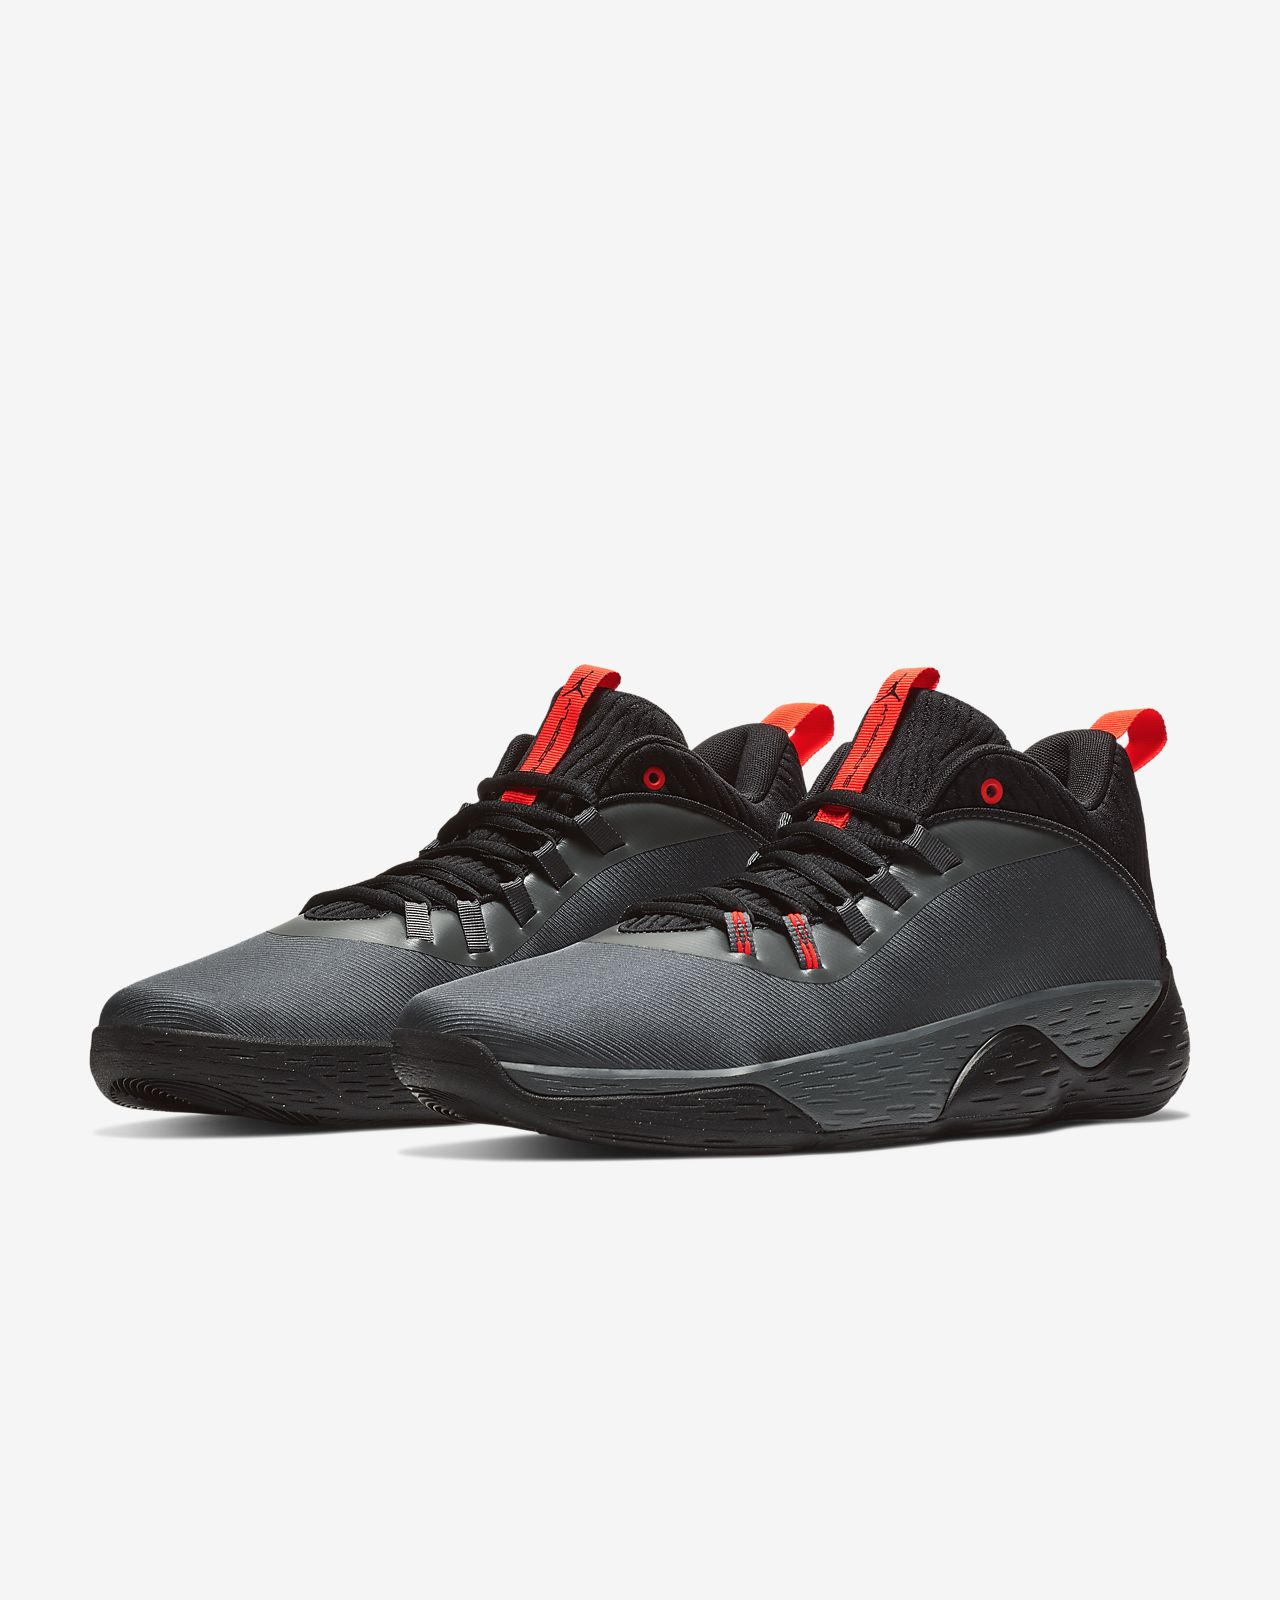 best service ae9f3 5ada6 Fly MVP Low pour Homme Chaussure de basketball Jordan Super.Fly MVP Low  pour Homme